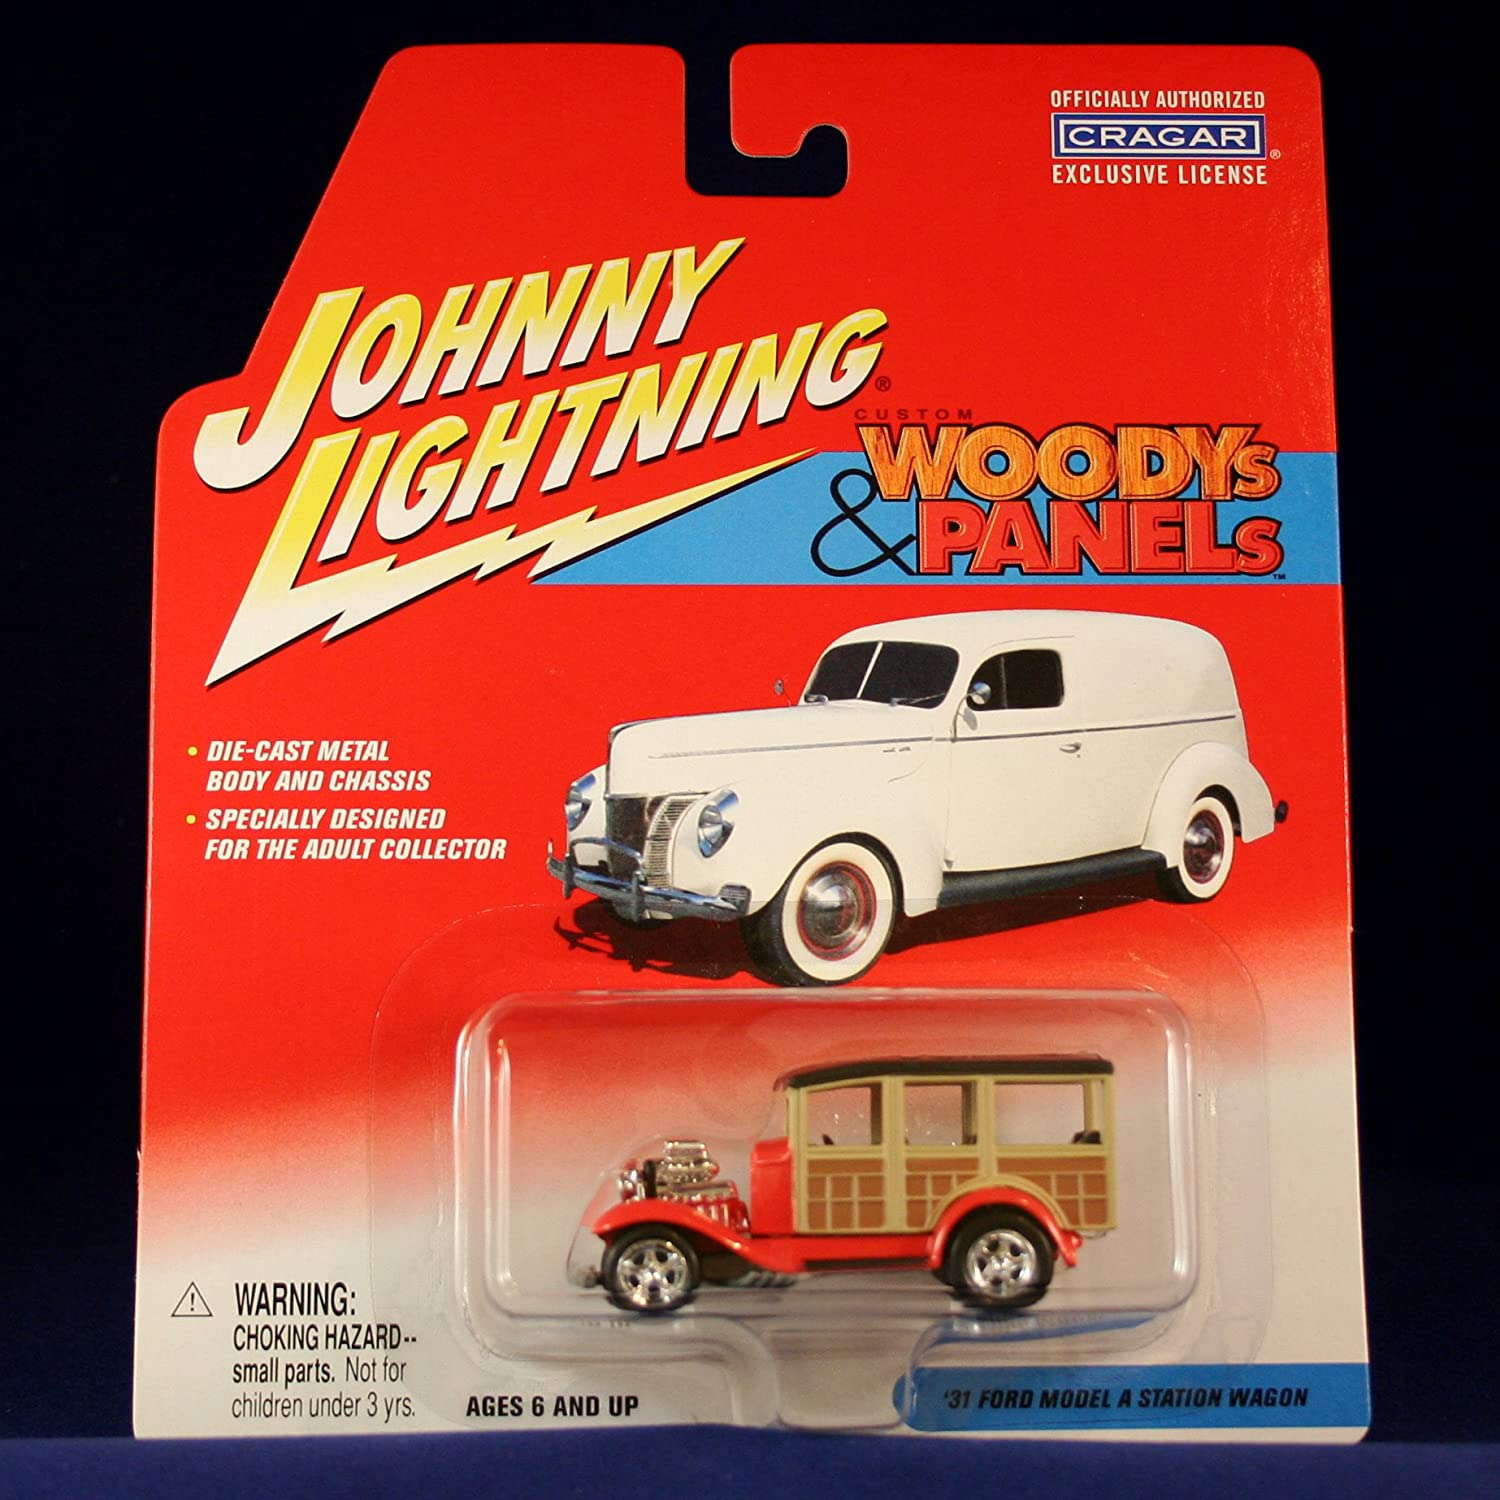 '31 FORD MODEL A STATION WAGON  ROT  Johnny Lightning 2002 CUSTOM WOODYS & PANELS Release 2 1:64 Scale Die Cast Vehicle by Johnny Lightning